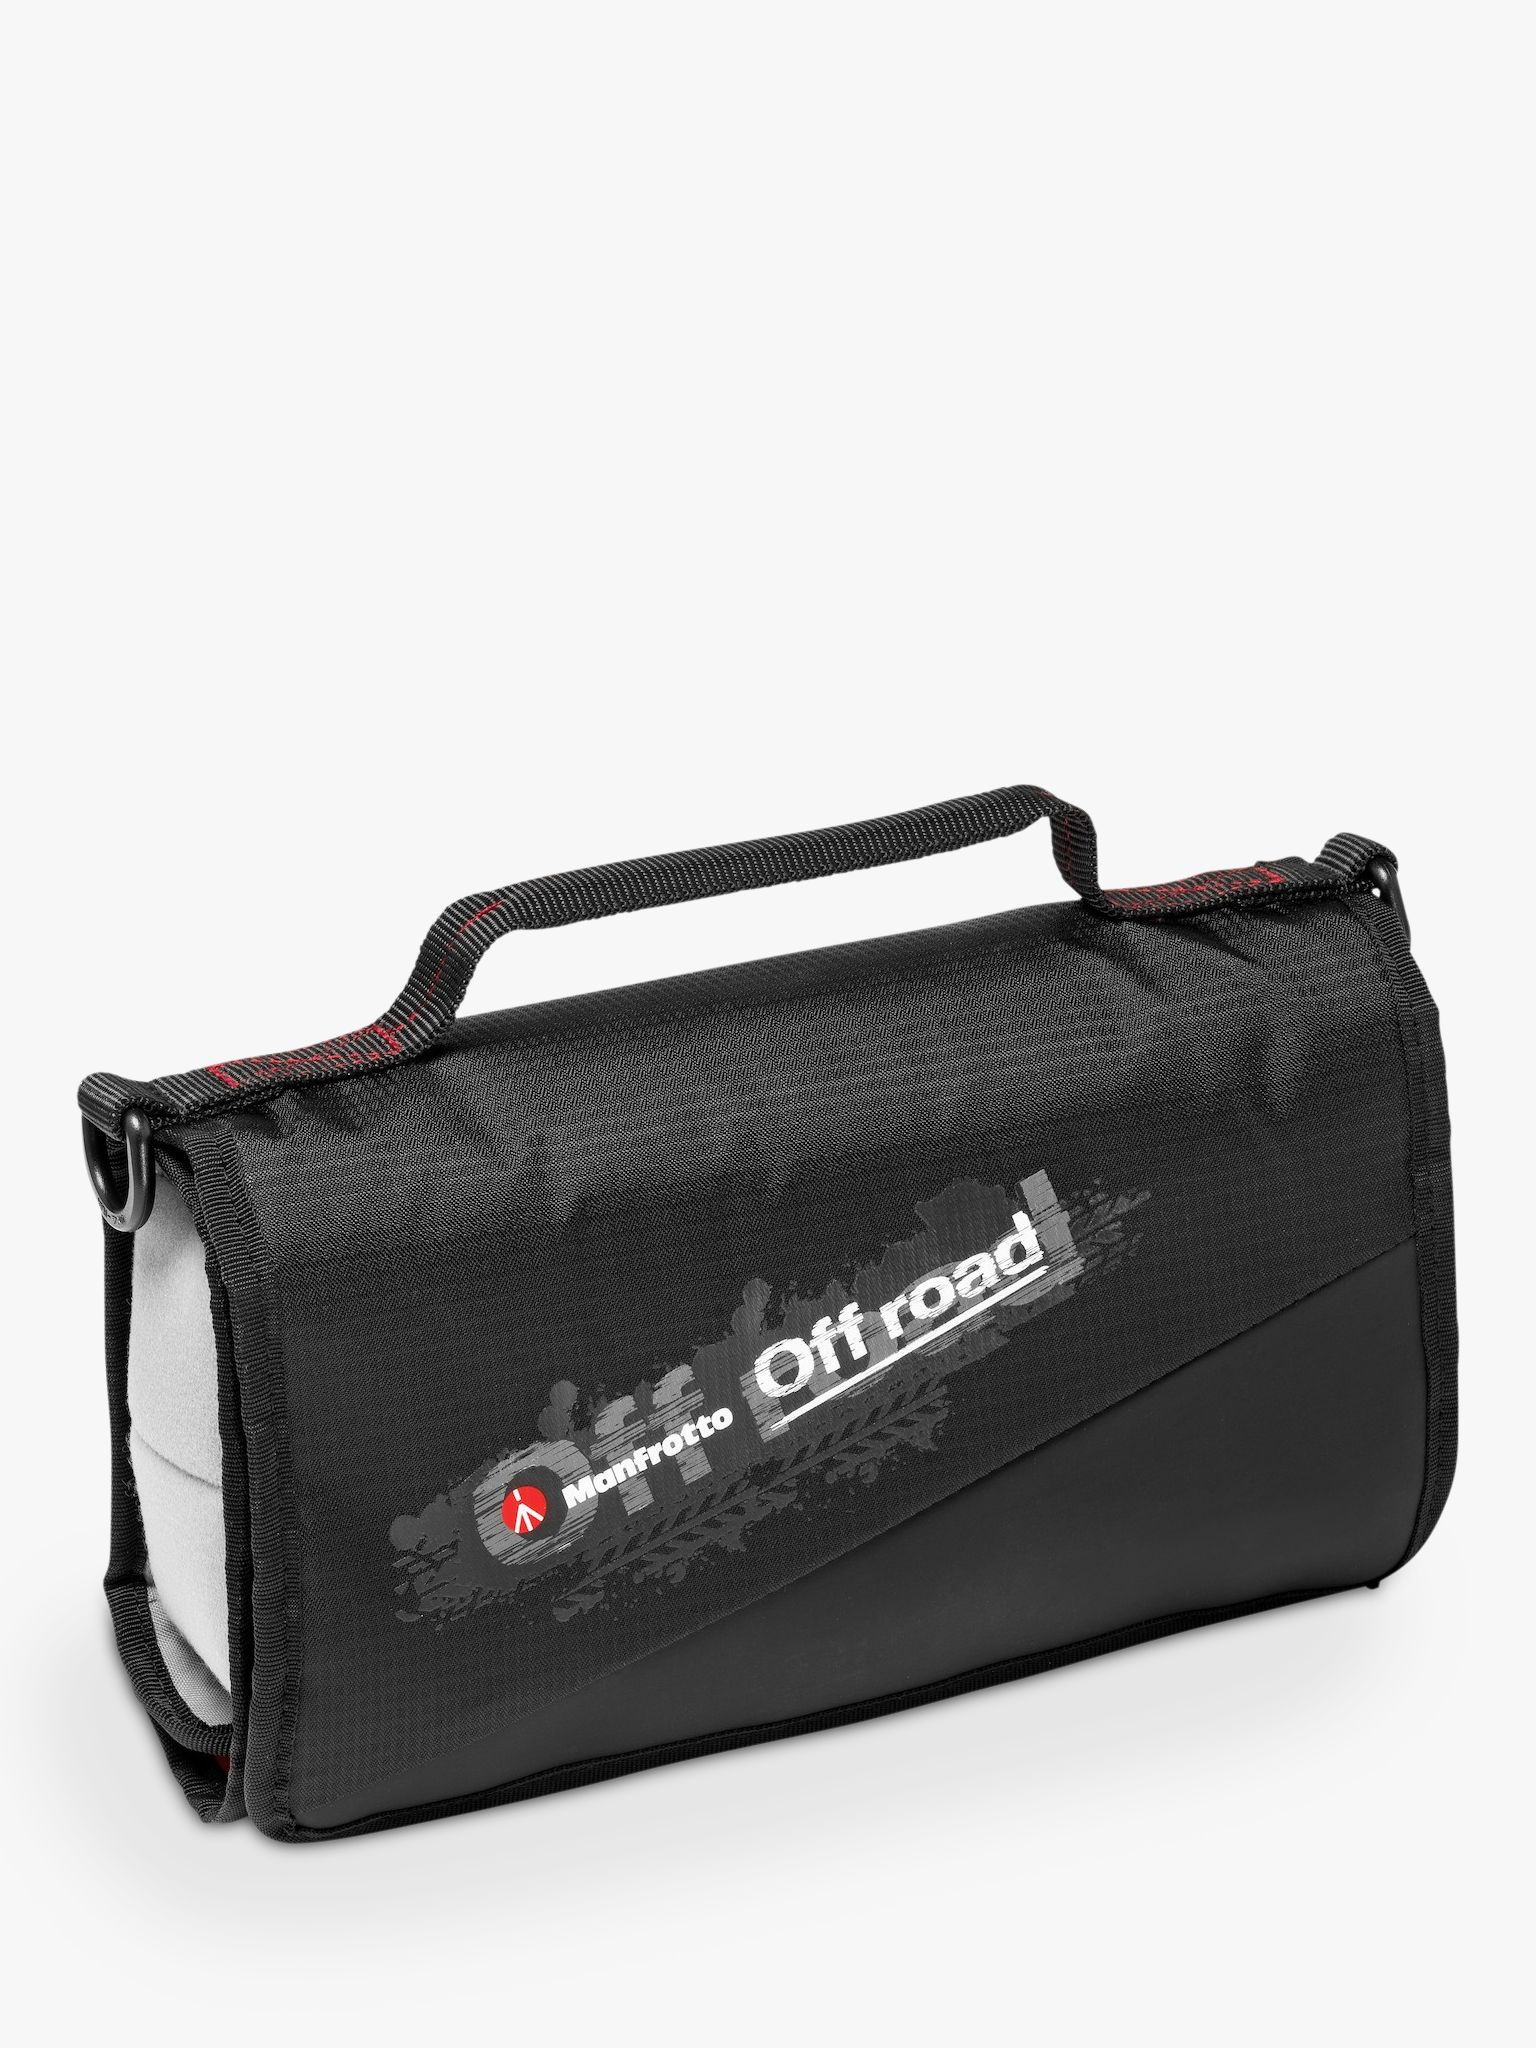 Manfrotto Manfrotto Off Road Stunt Roll Organiser for Action Cameras, Black